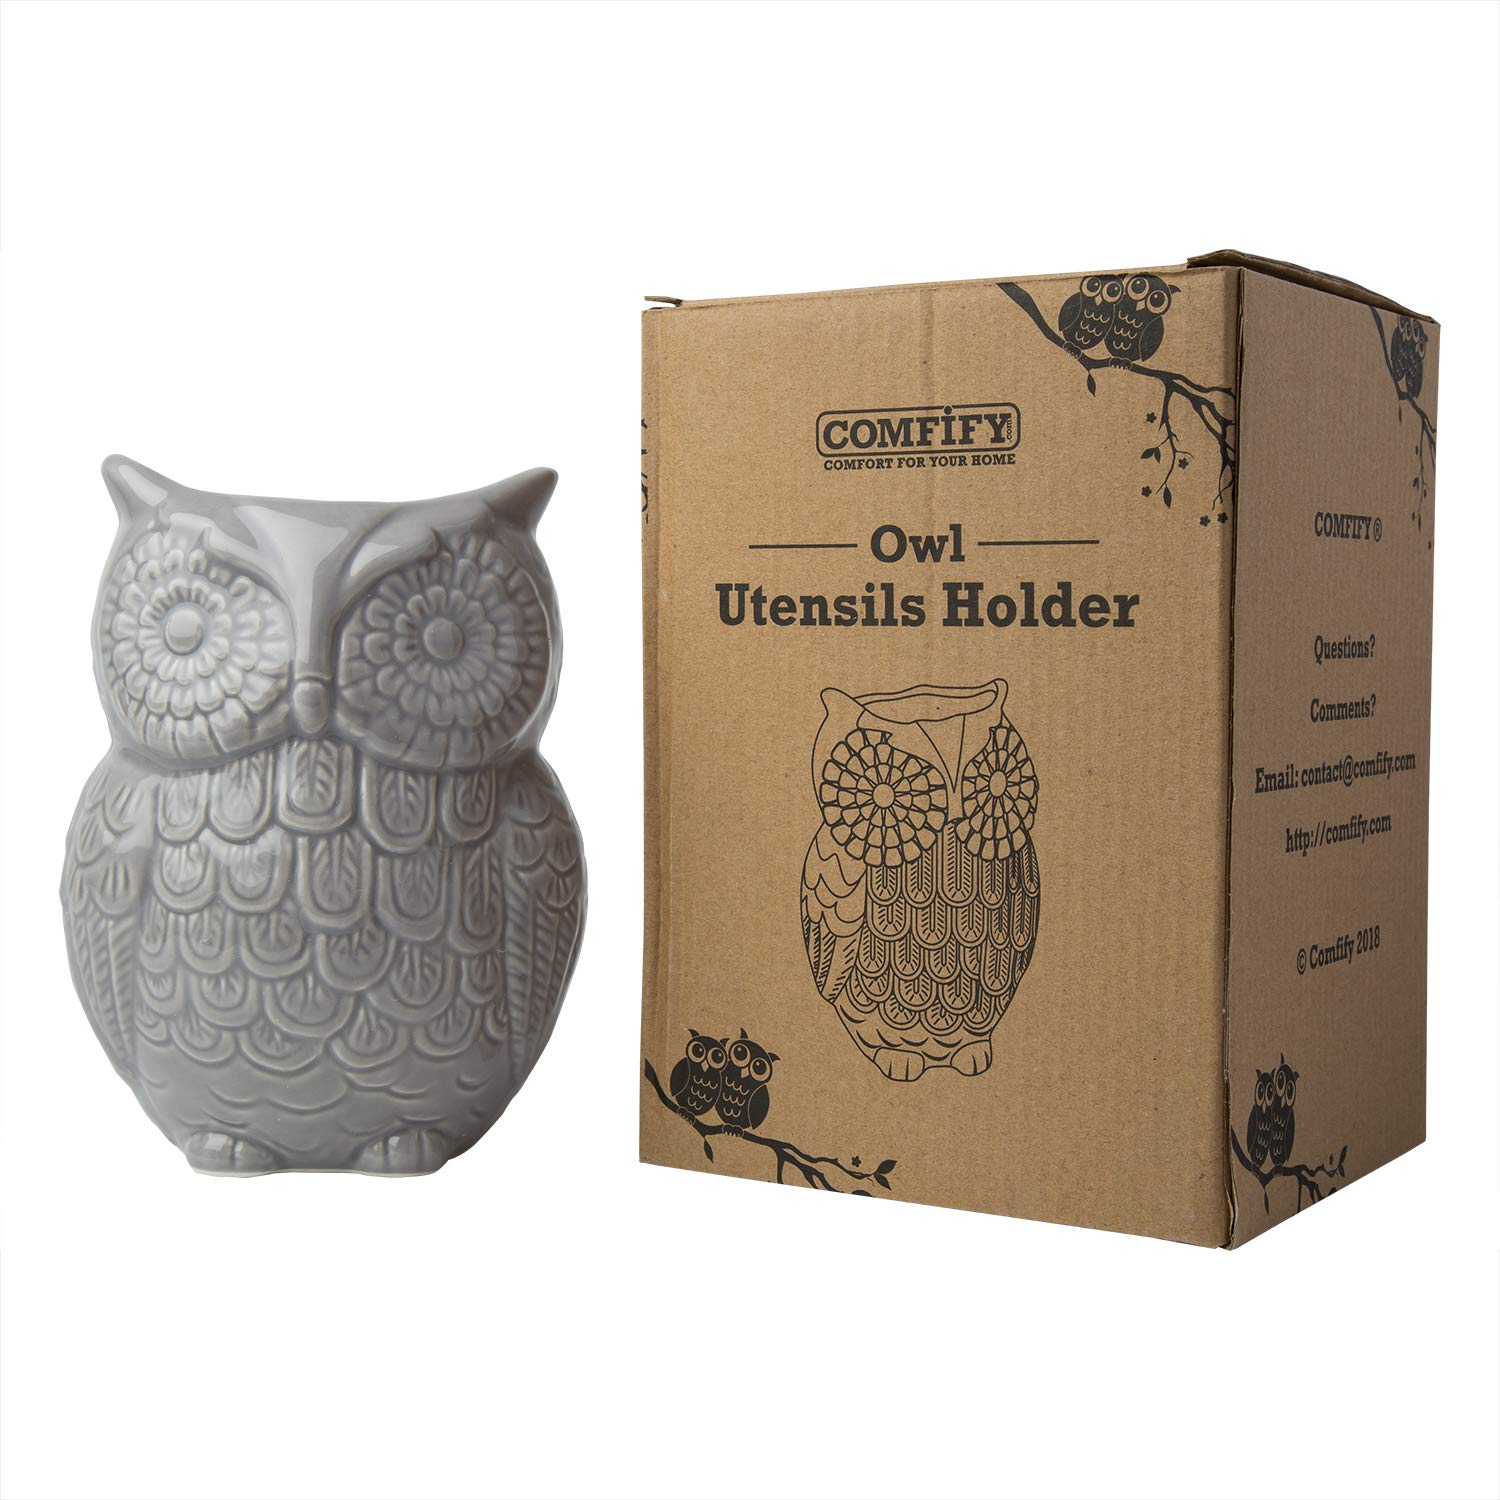 "Comfify Owl Utensil Holder Decorative Ceramic Cookware Crock & Organizer, in Lovely Grey Color - Utensil Caddy and Perfect Kitchen Ceramic Décor Gift - 5"" x 7"" x 4"" Size by Comfify (Image #2)"